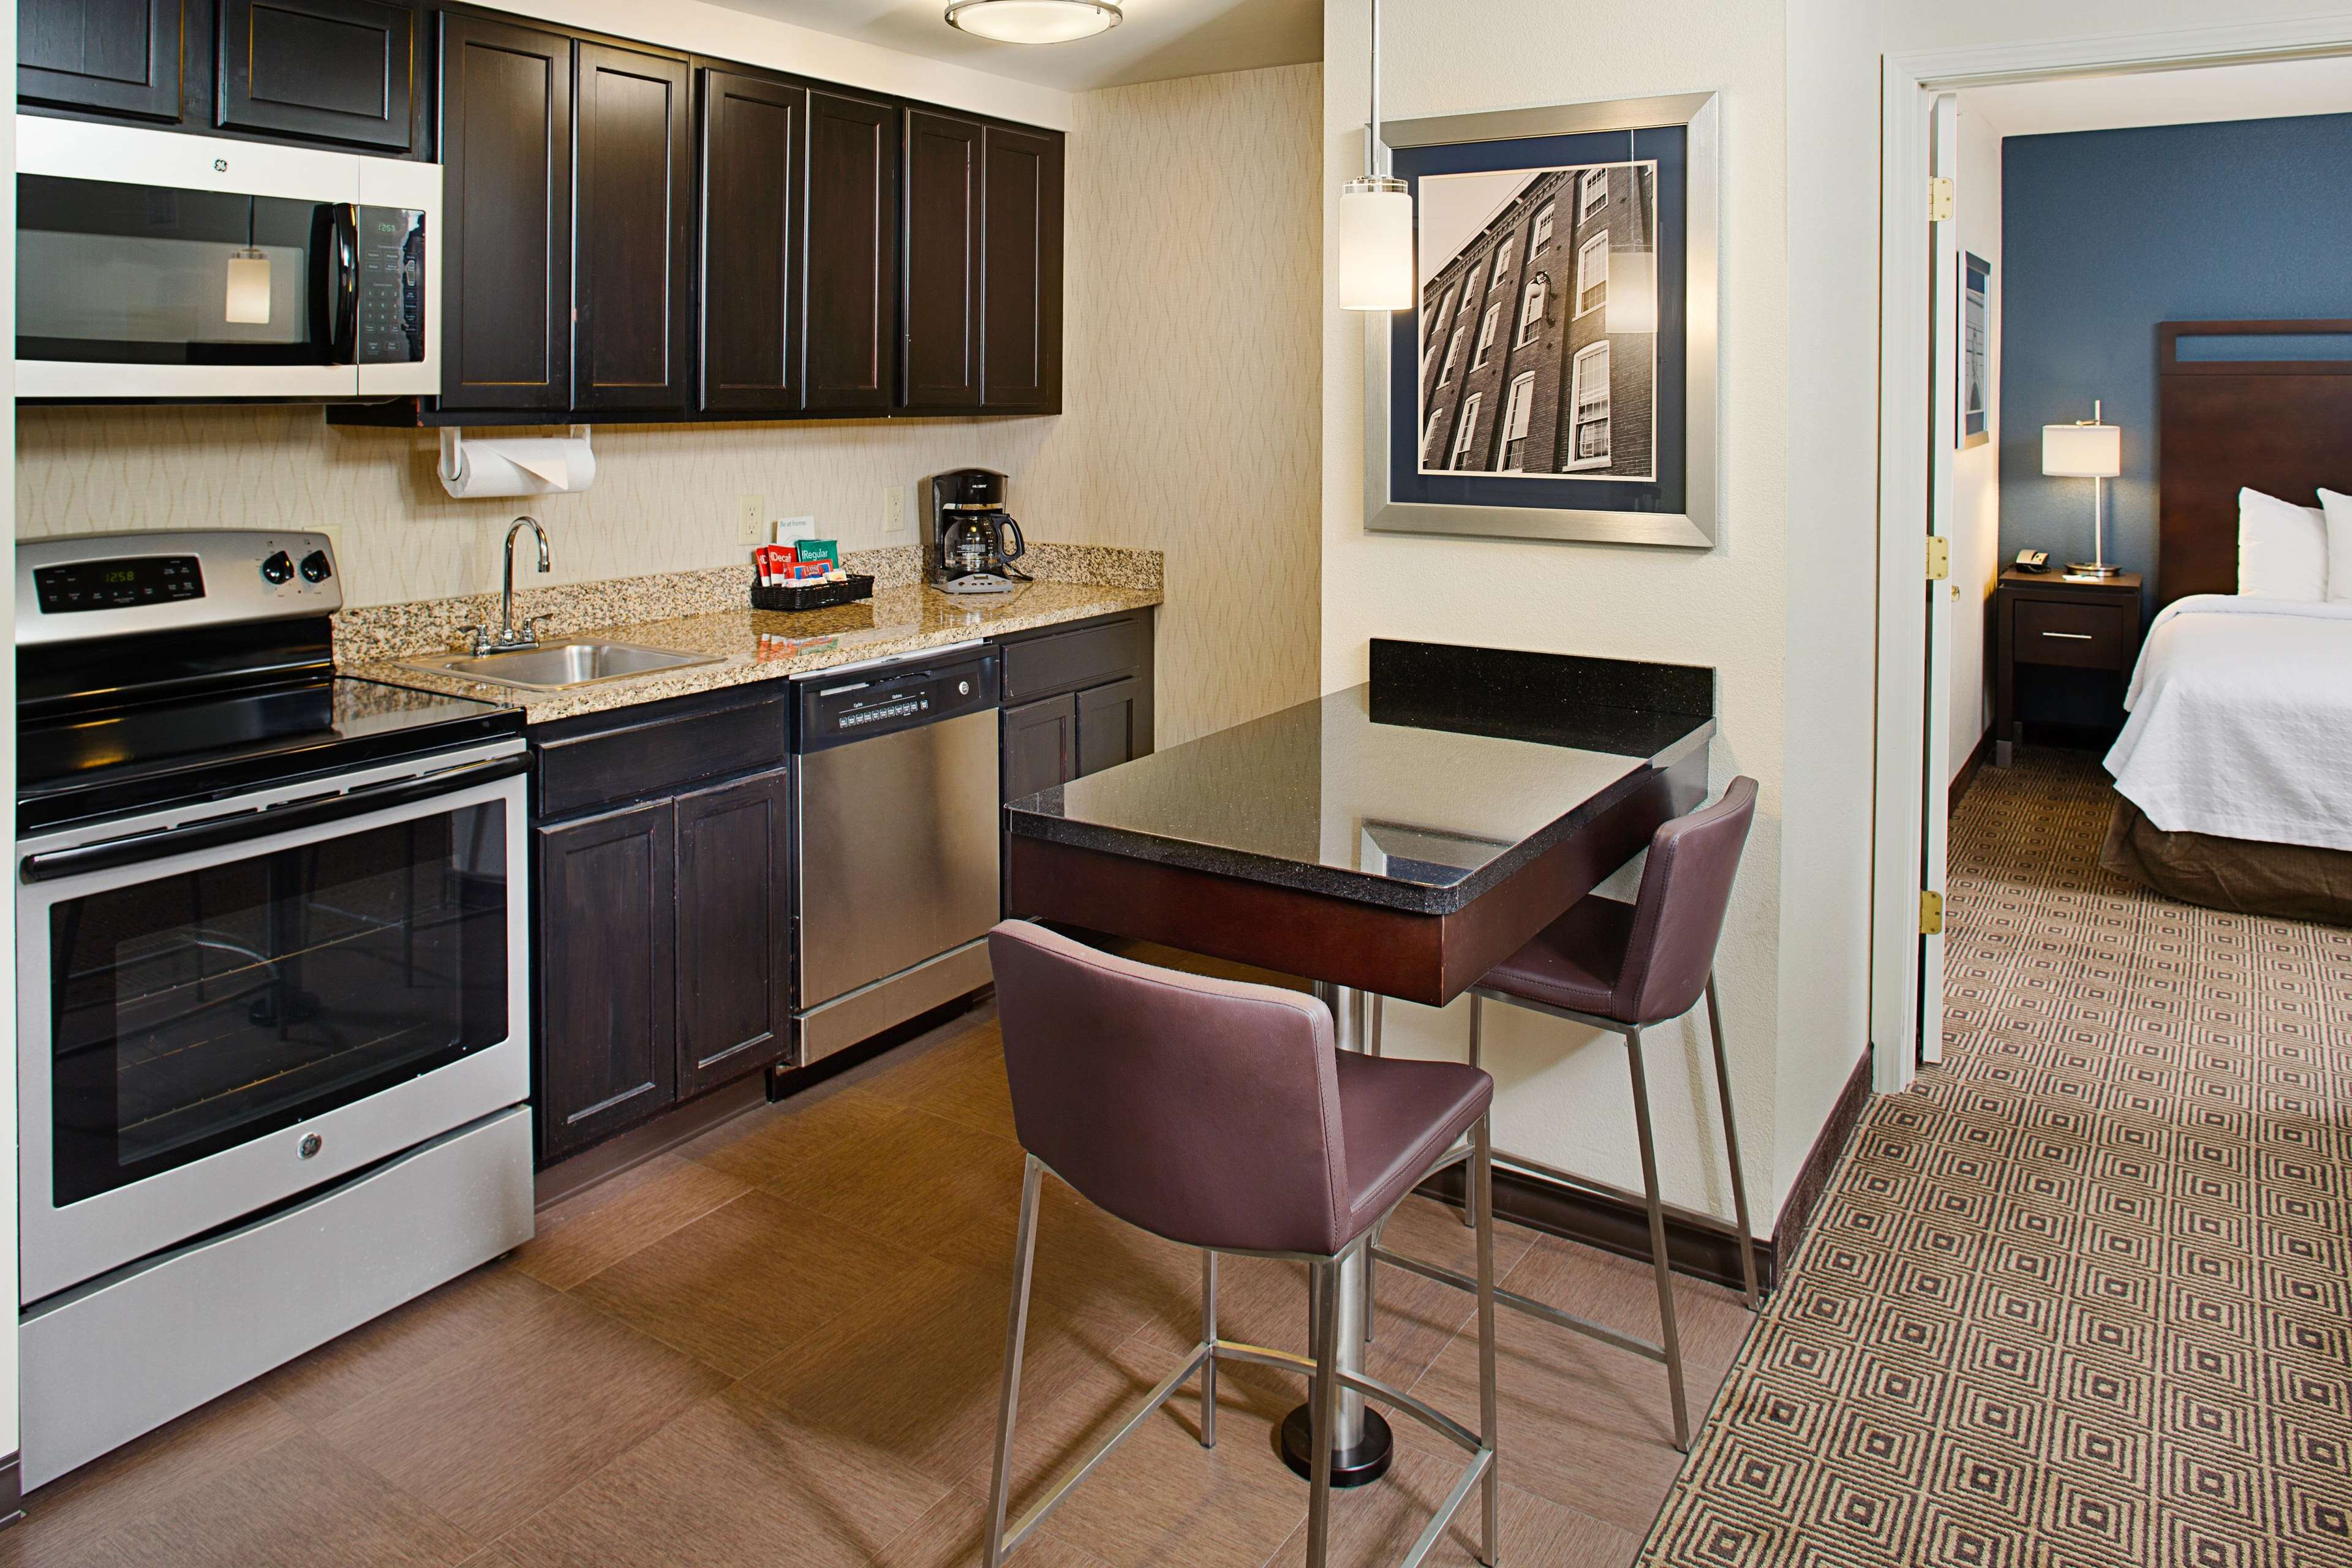 Homewood Suites by Hilton Manchester/Airport image 13